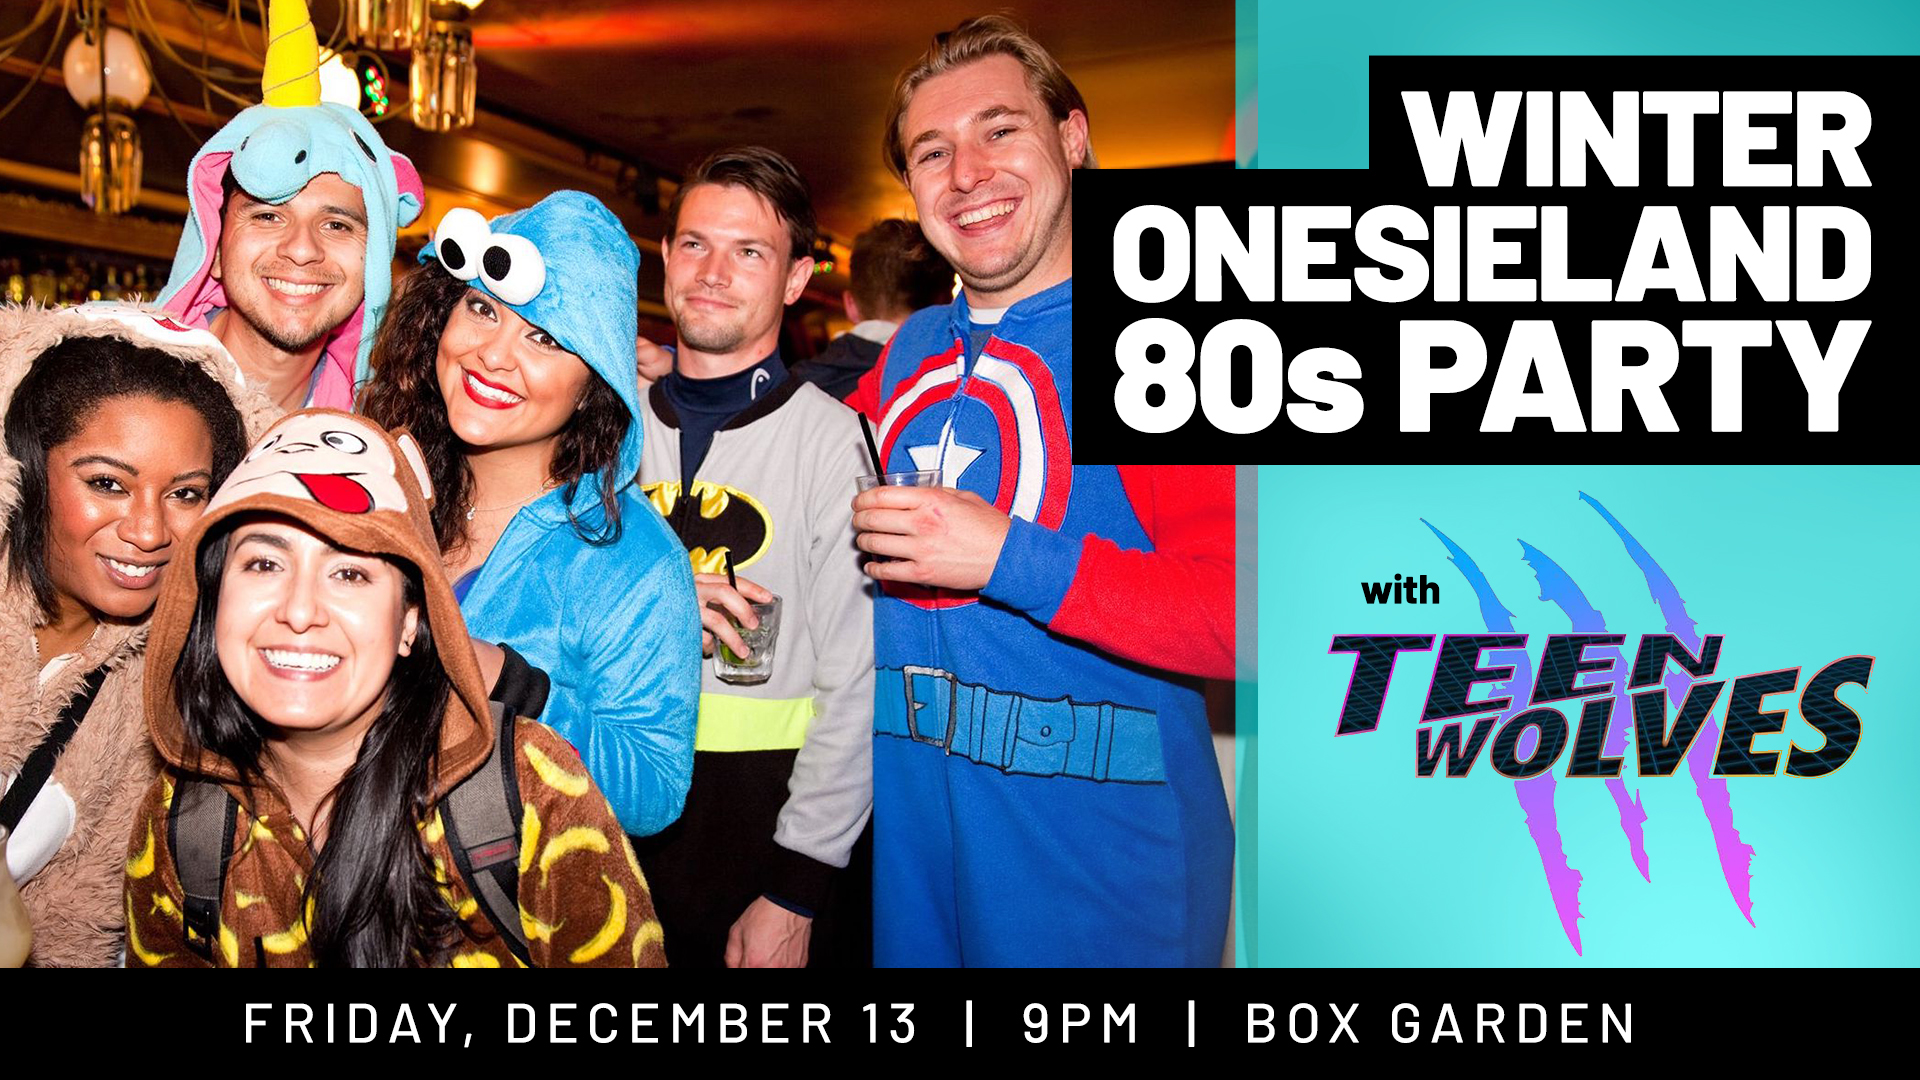 Teen Wolves 80s Movie Tribute Band & Onesie Party